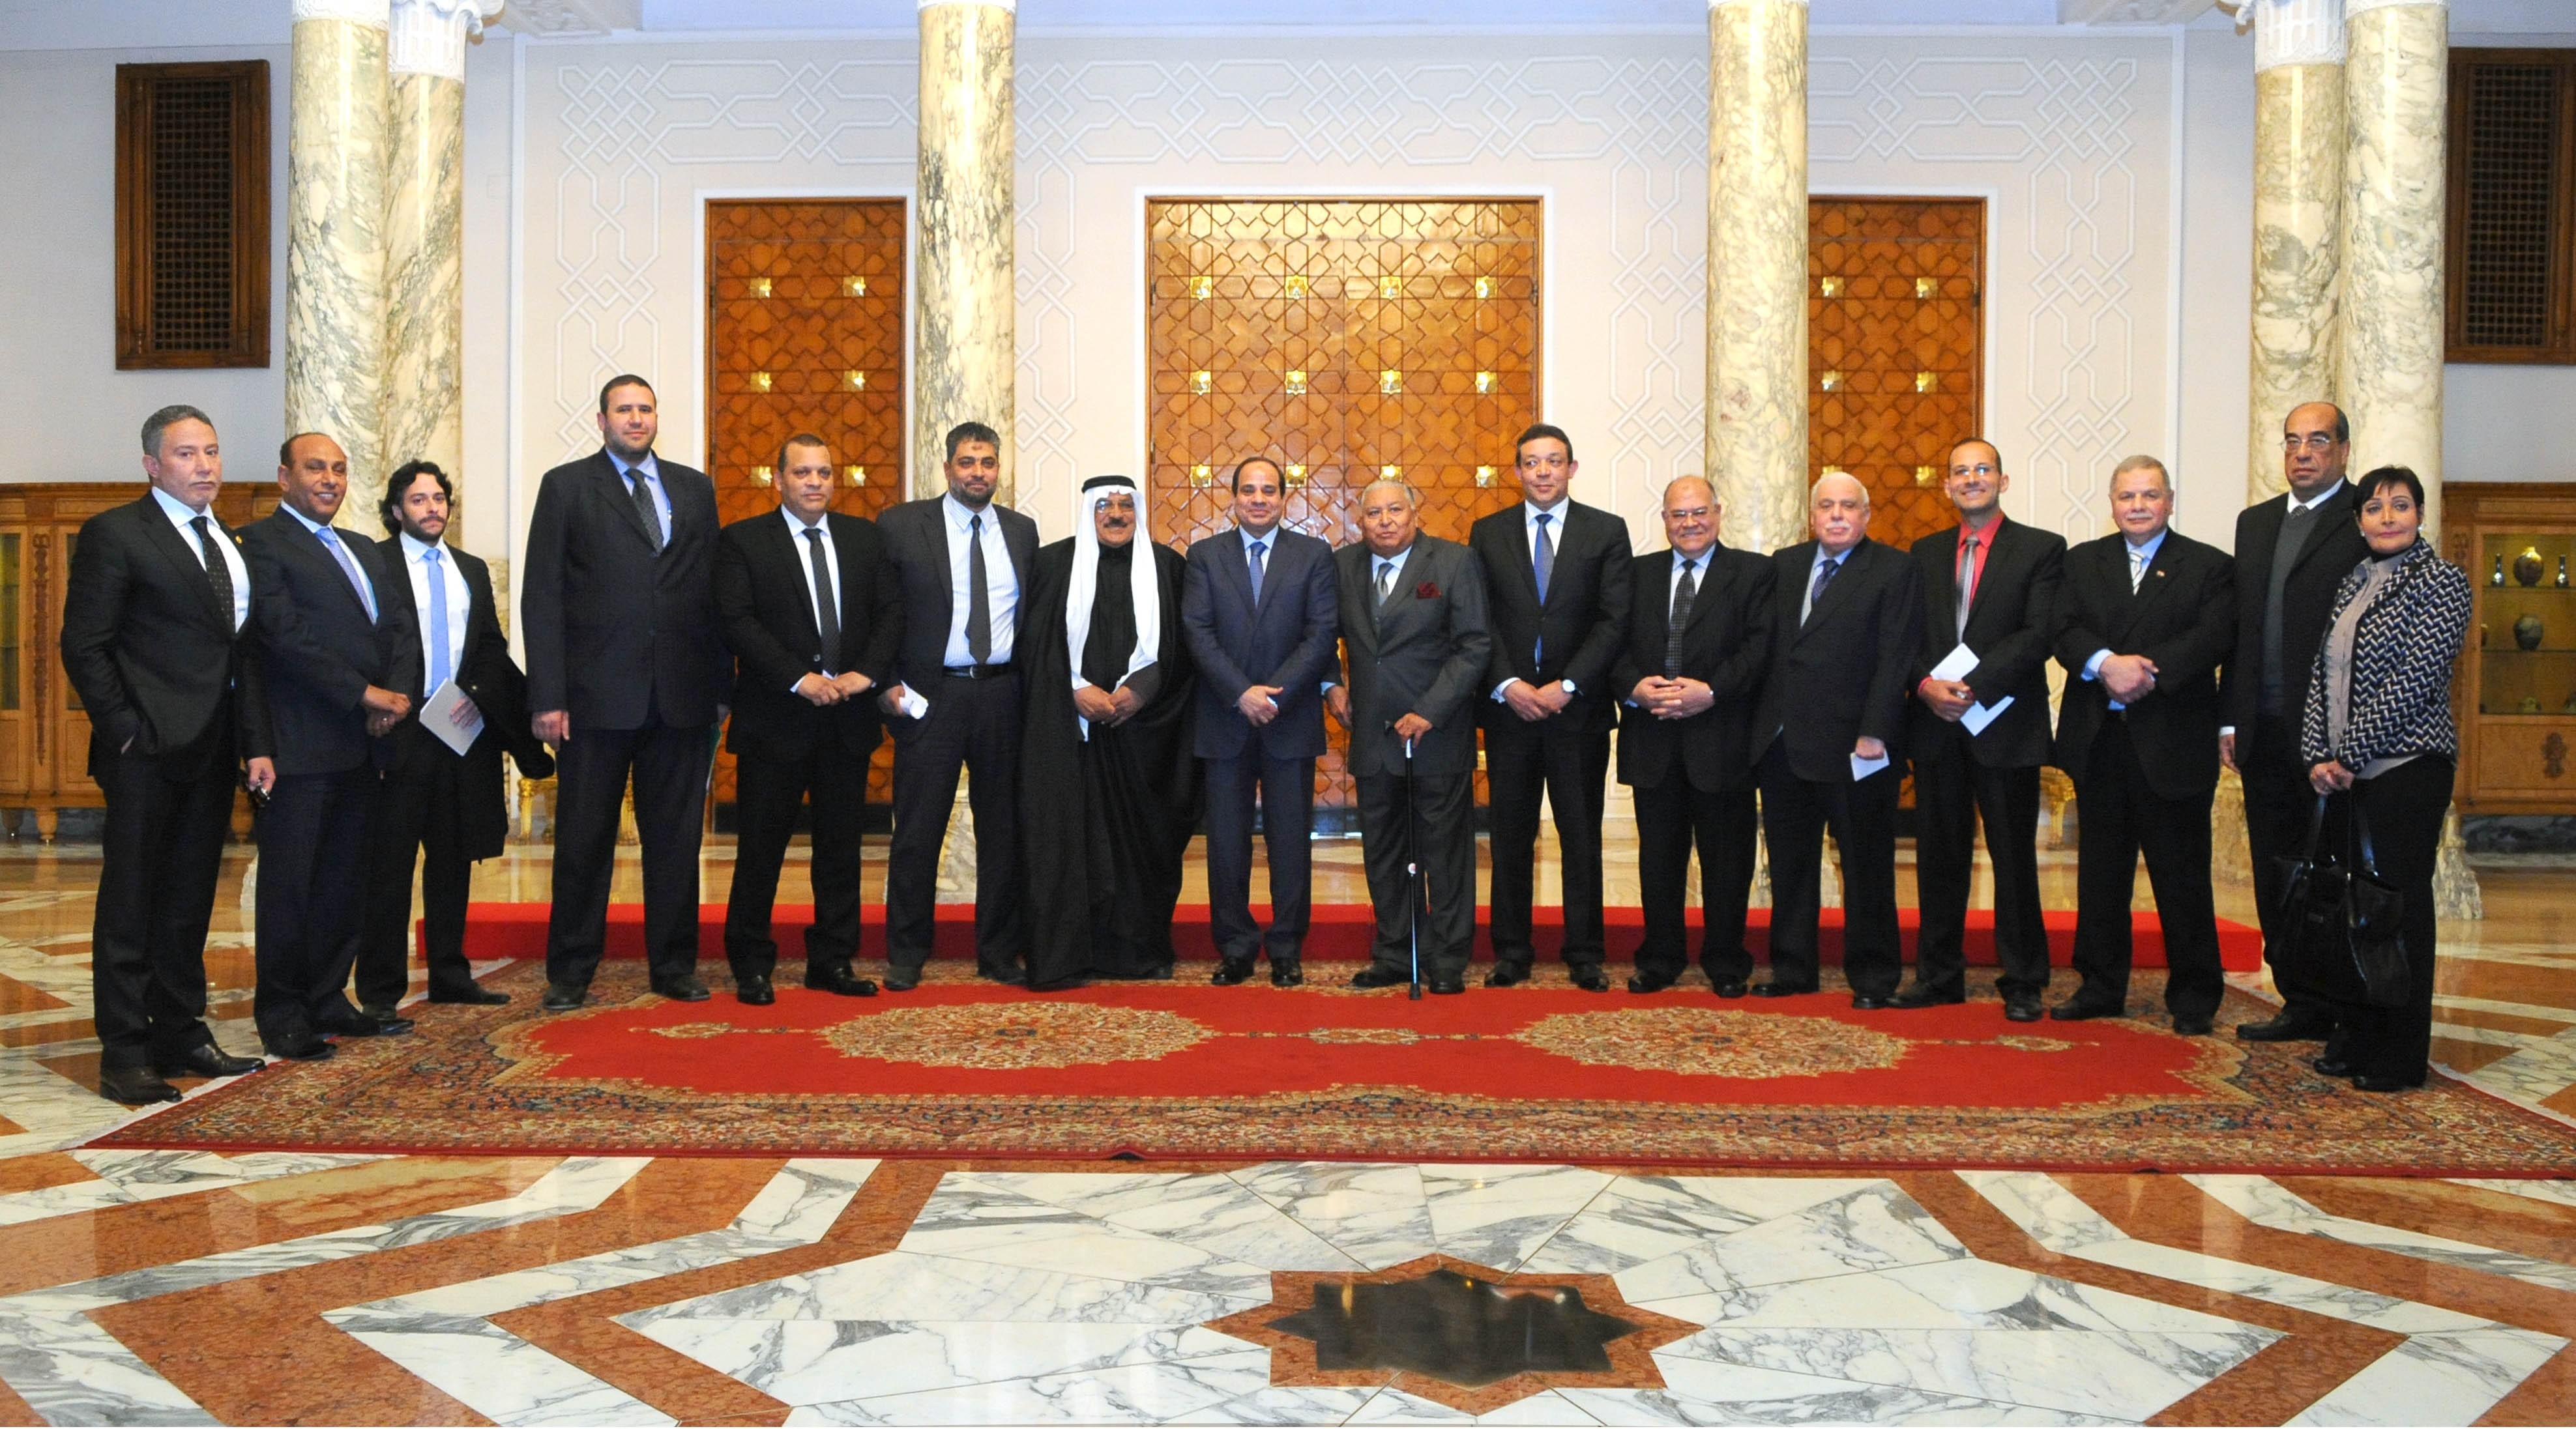 2)Abdel Fattah Al-Sisi held a two-day meeting with representatives of political parties in January 2015.  (Photo by Presidential Office)